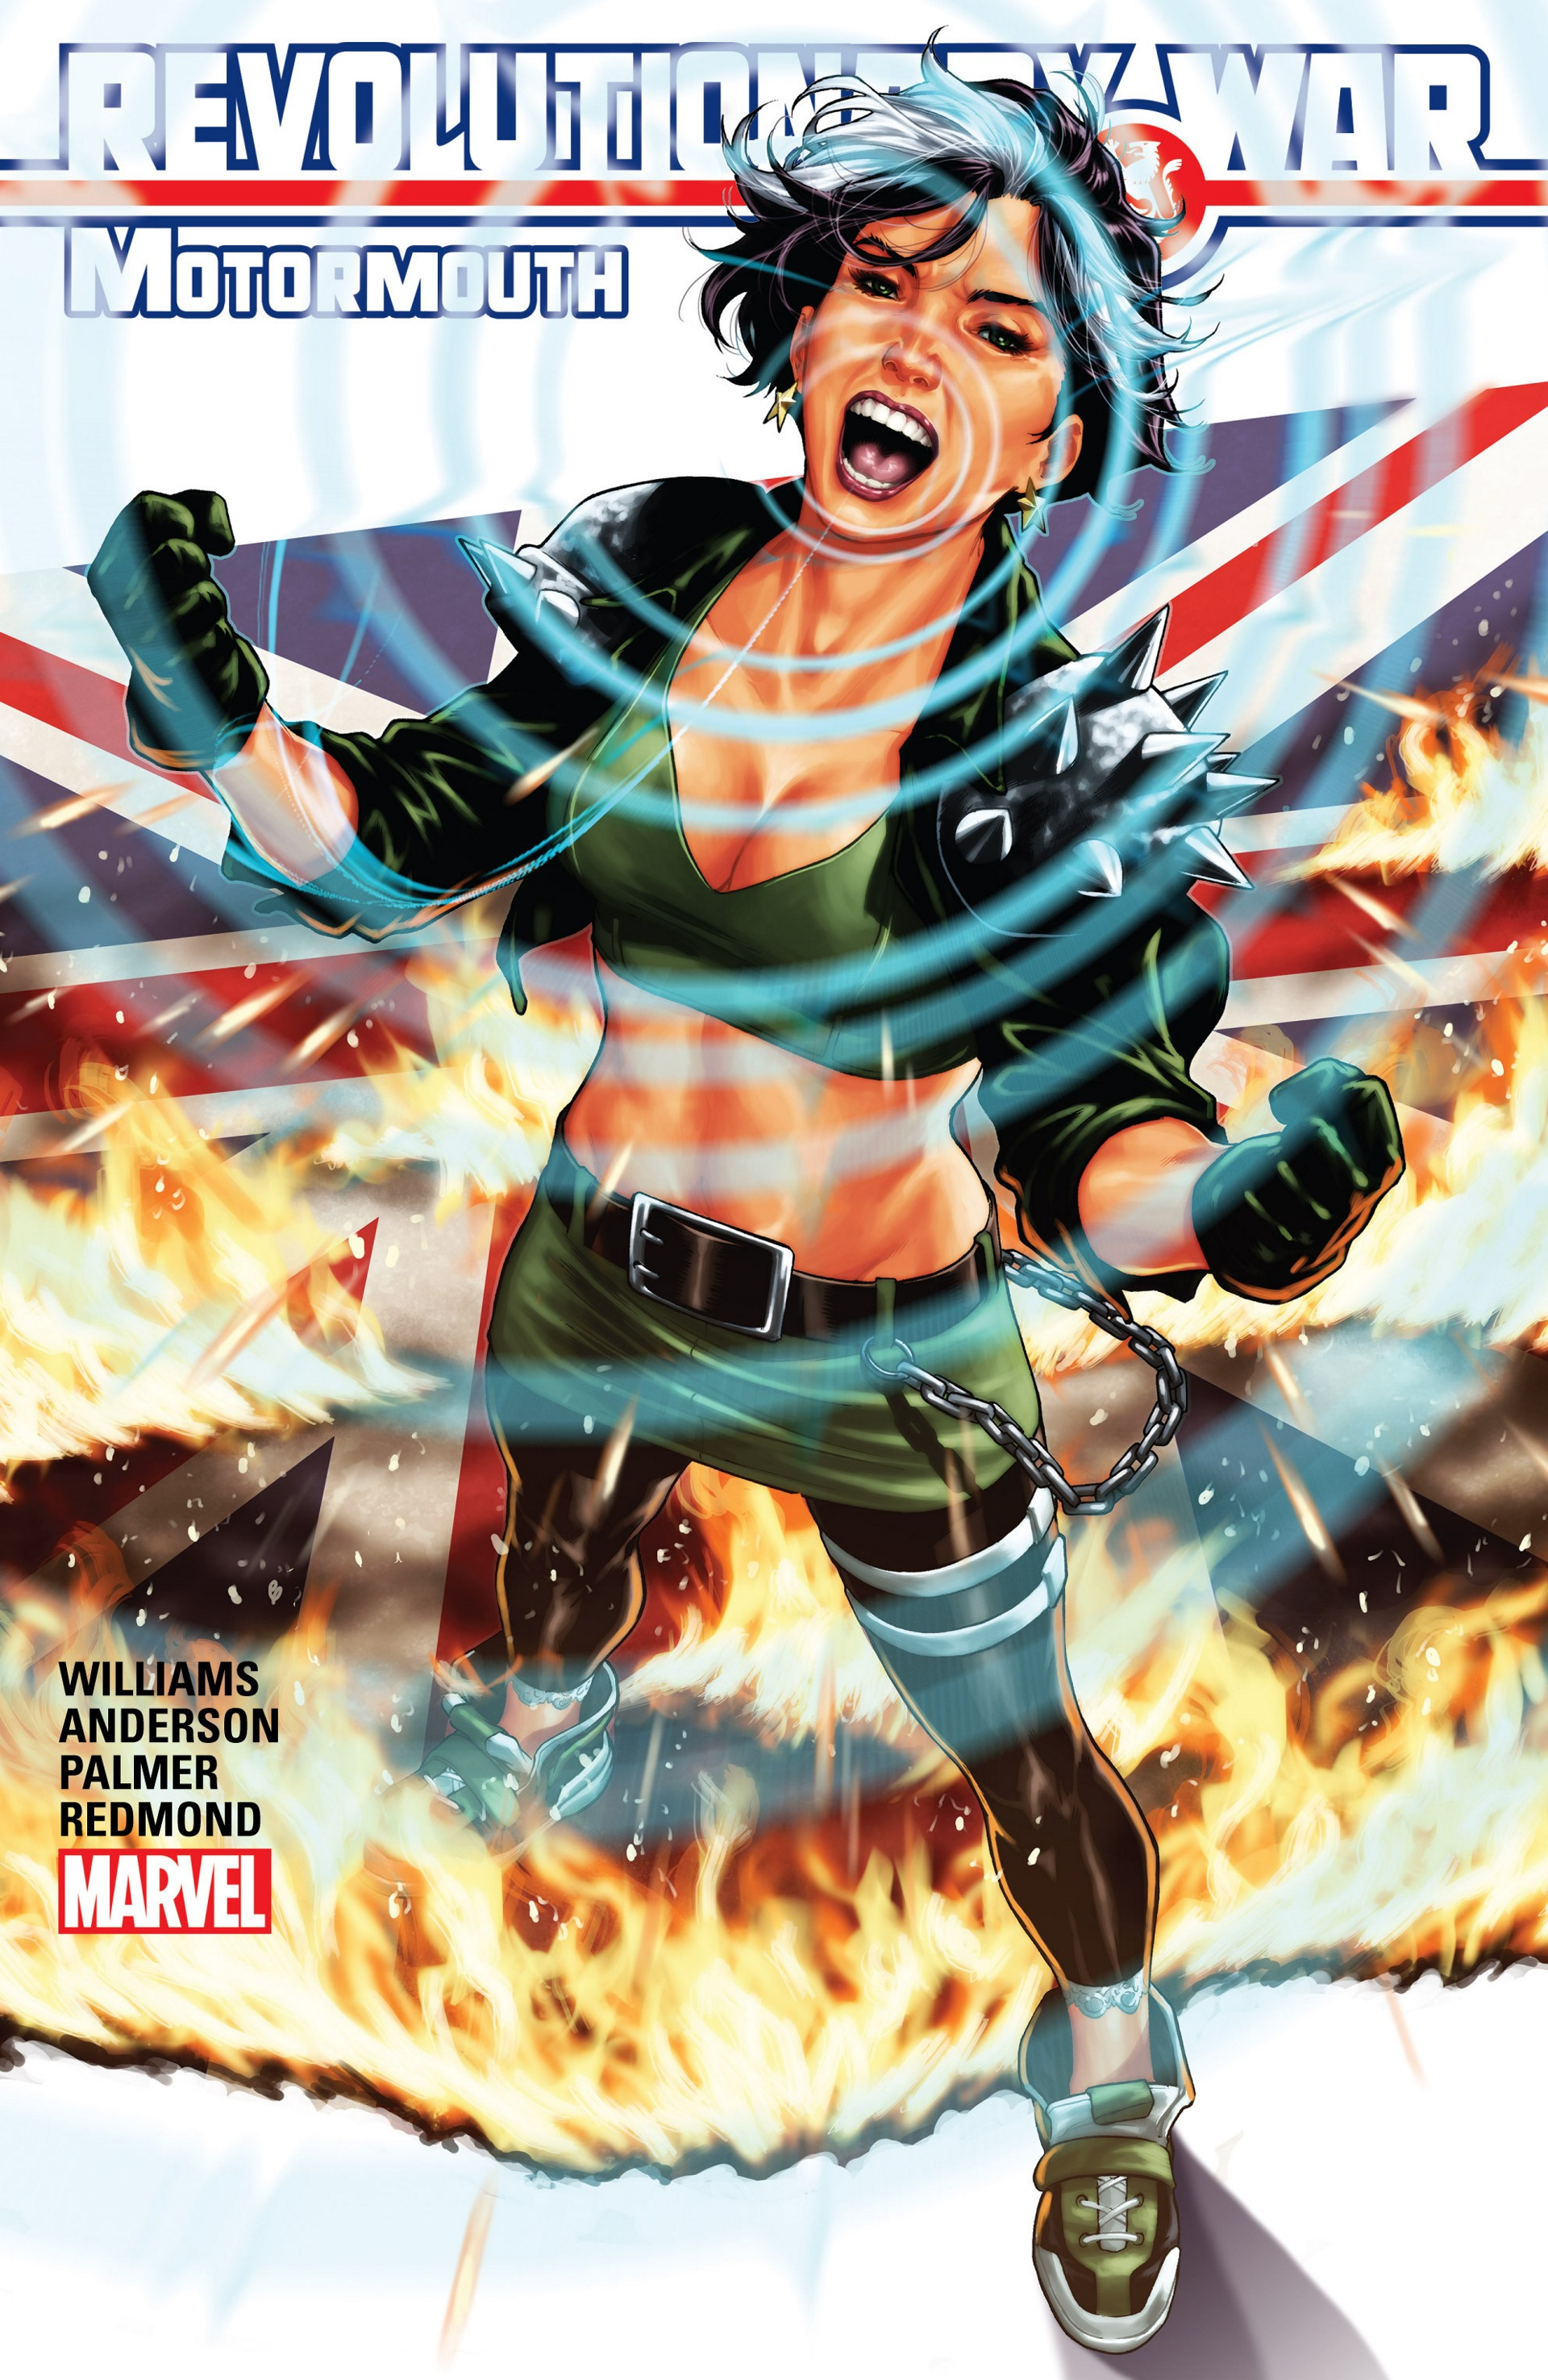 Read online Revolutionary War: Motormouth comic -  Issue # Full - 1